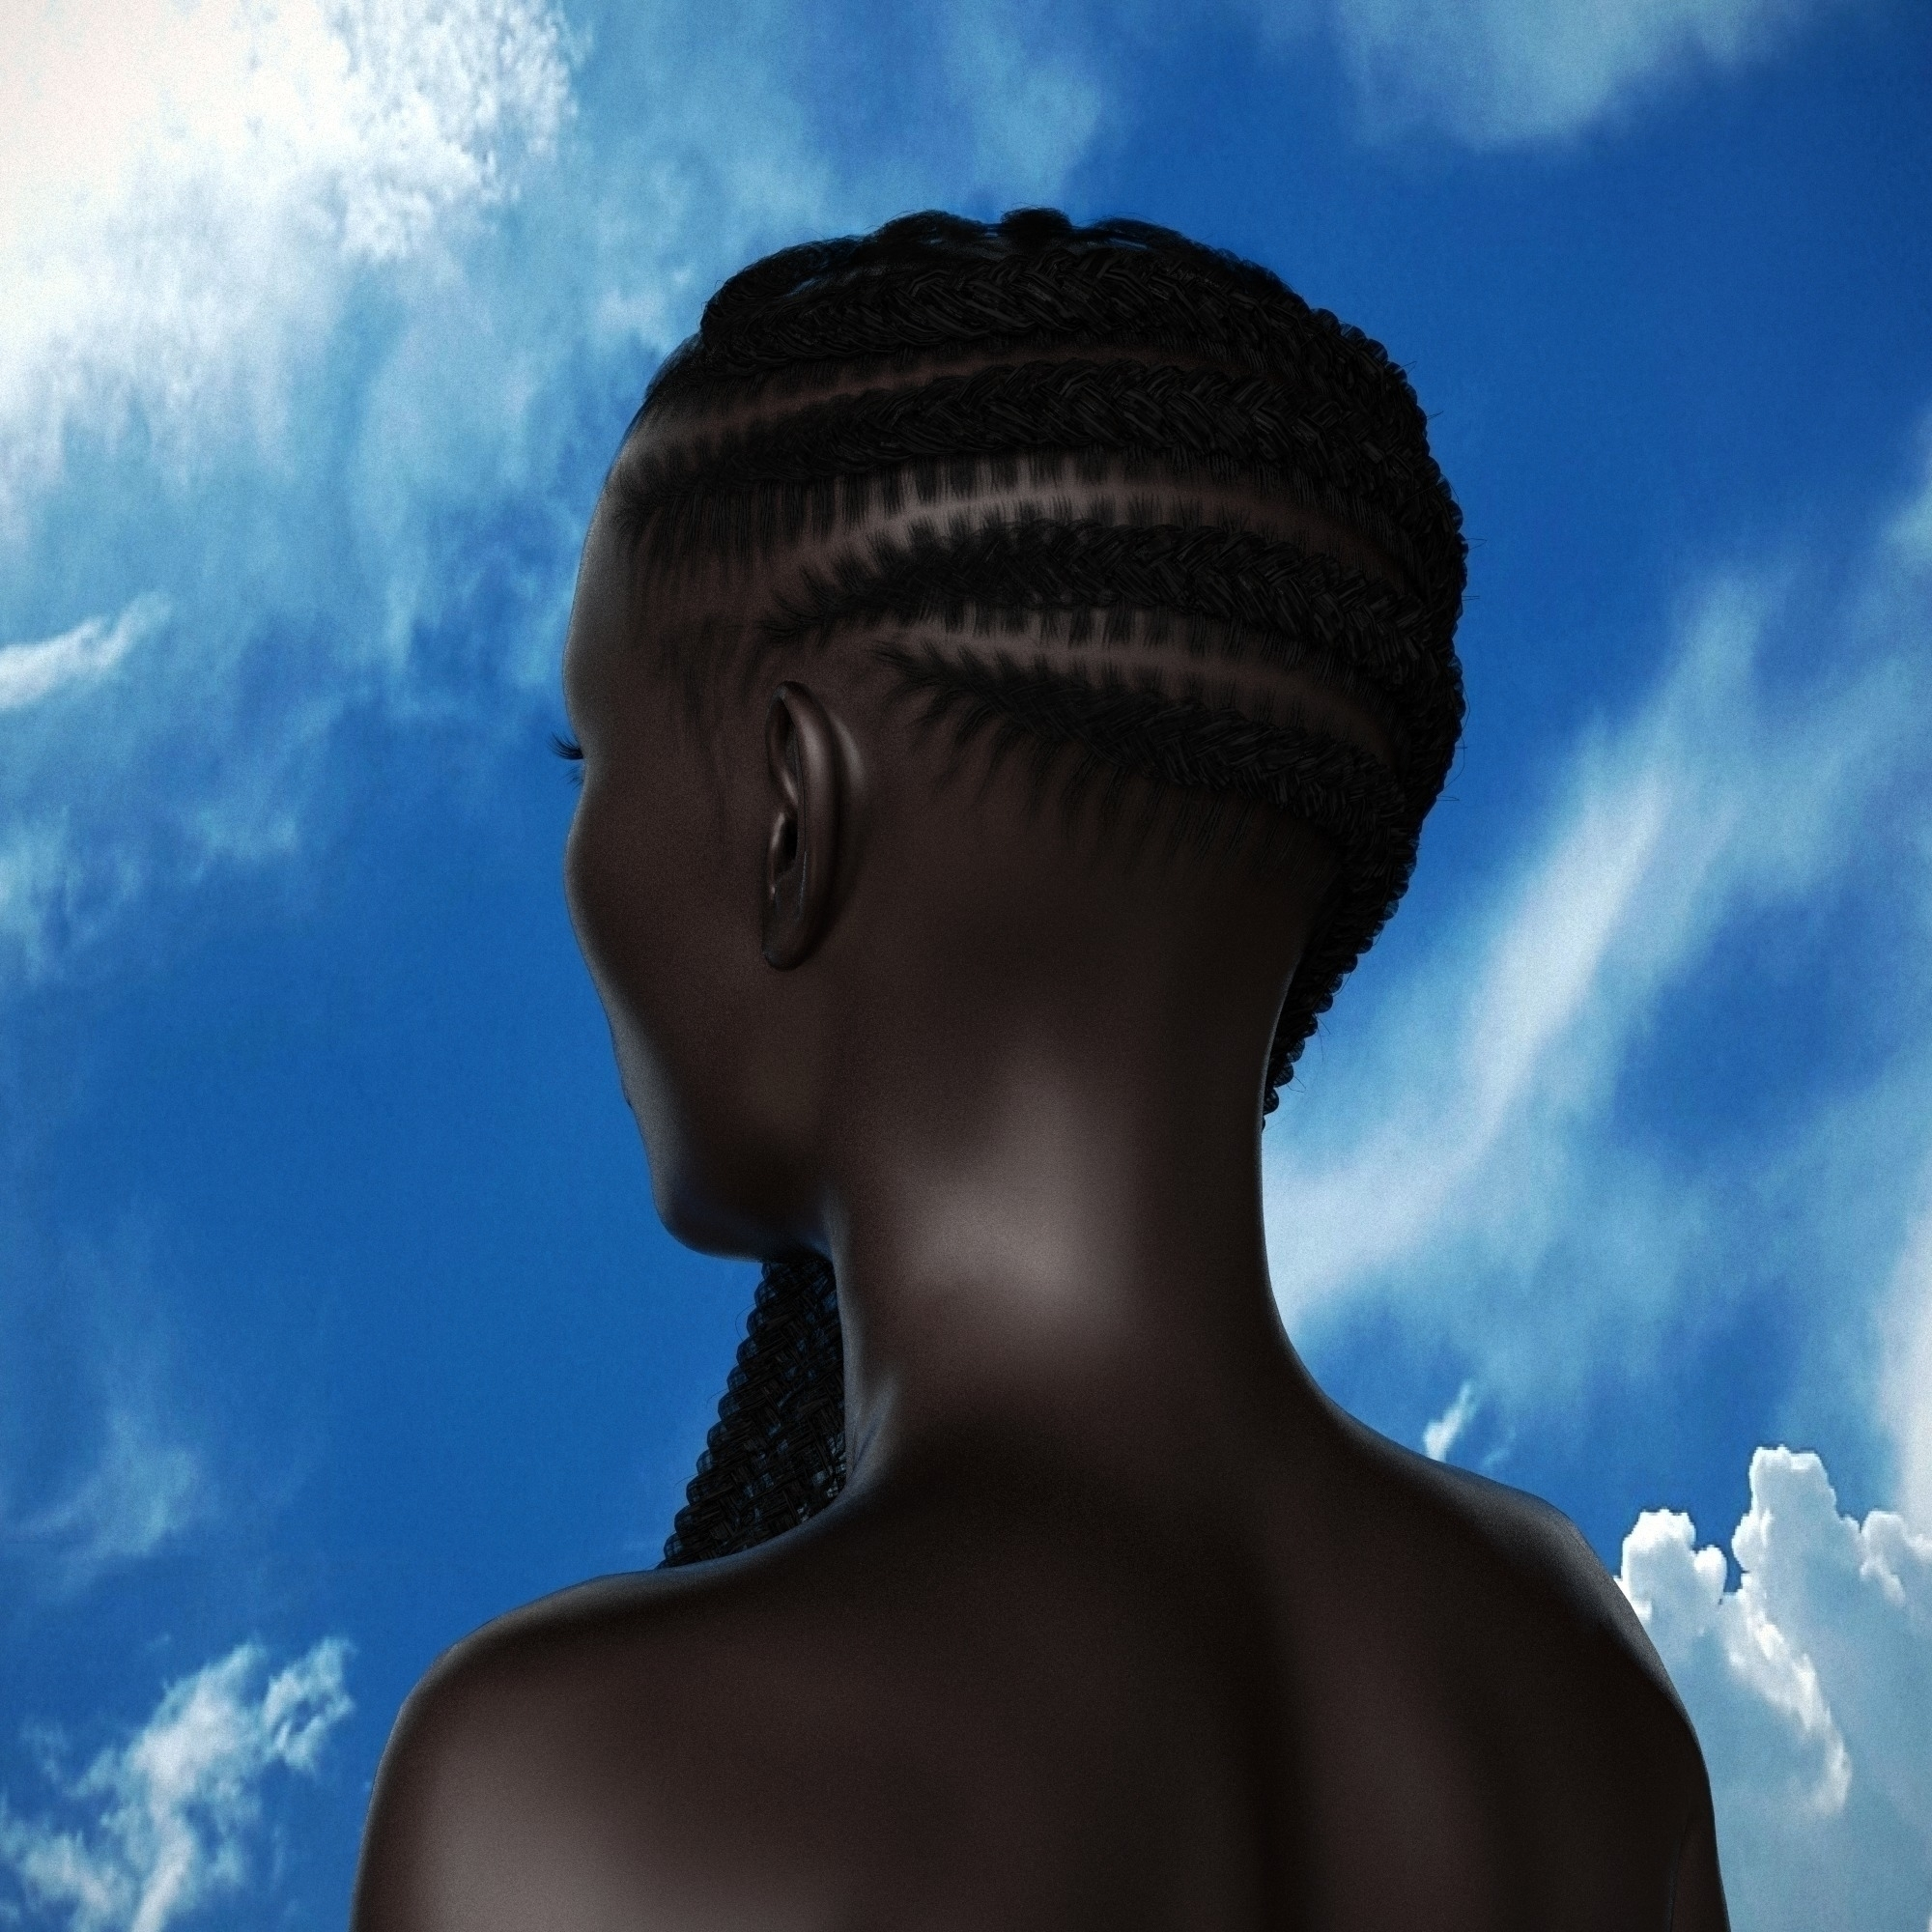 Goddess Braids braids share sim - z3rogravity | ello